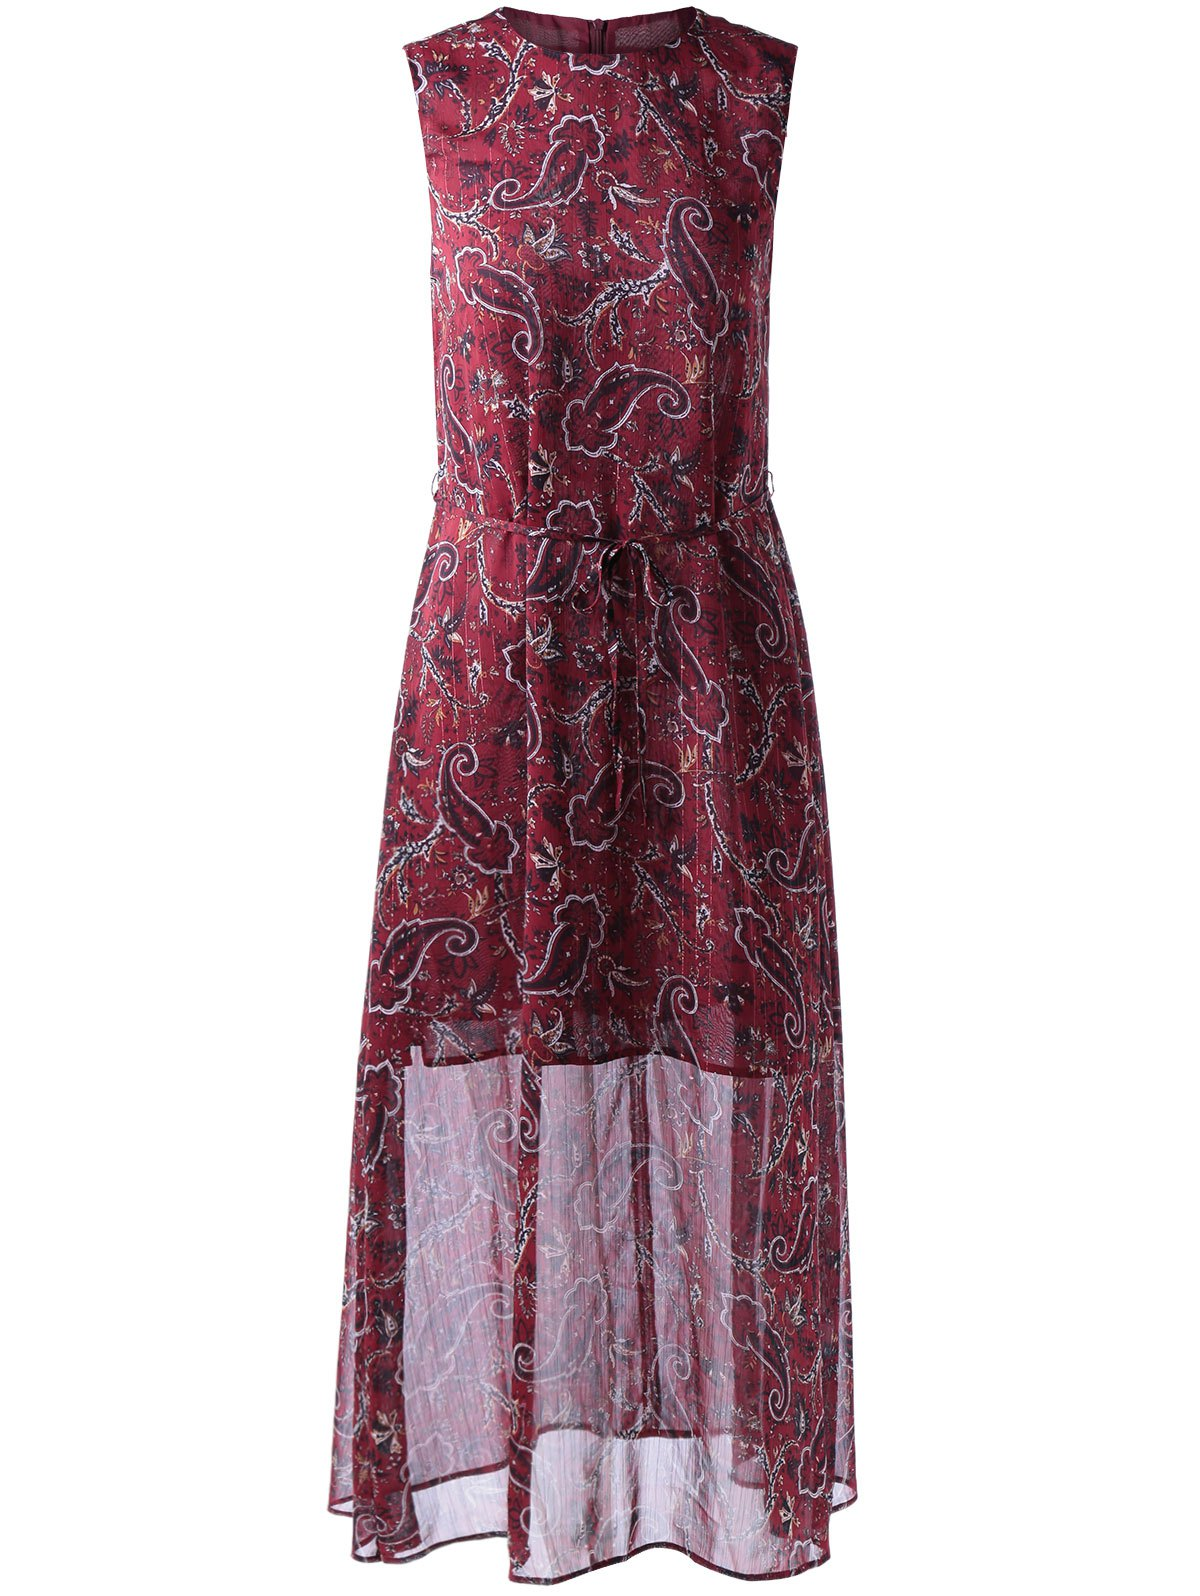 Retro Style Round Collar Sleeveless Dress With paisley Printing For WomenWomen<br><br><br>Size: S<br>Color: WINE RED